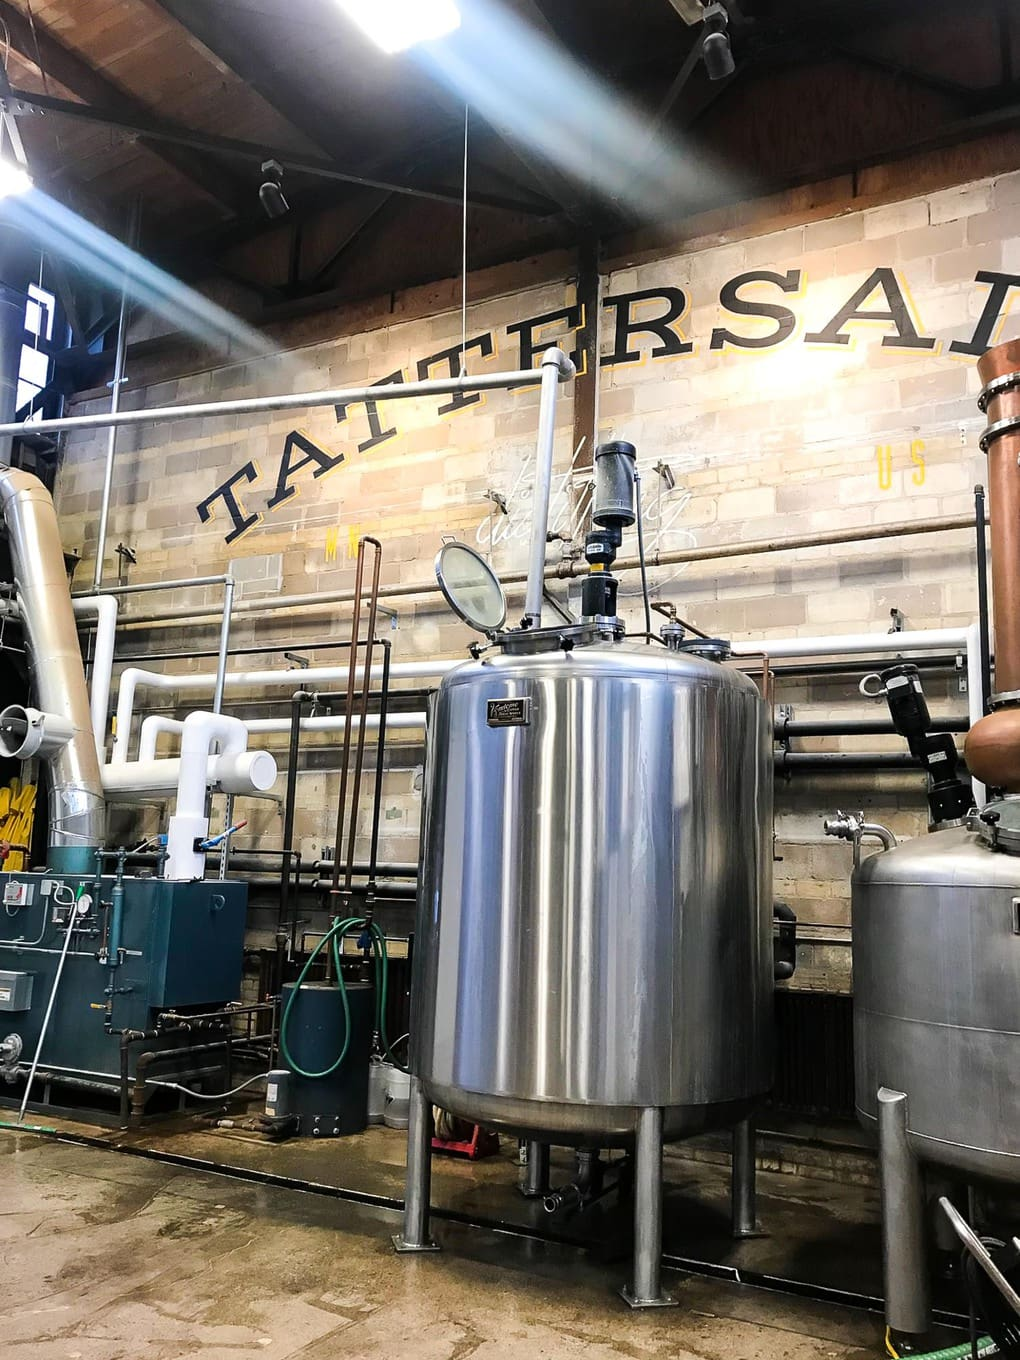 Tattersall Distilling in Minneapolis